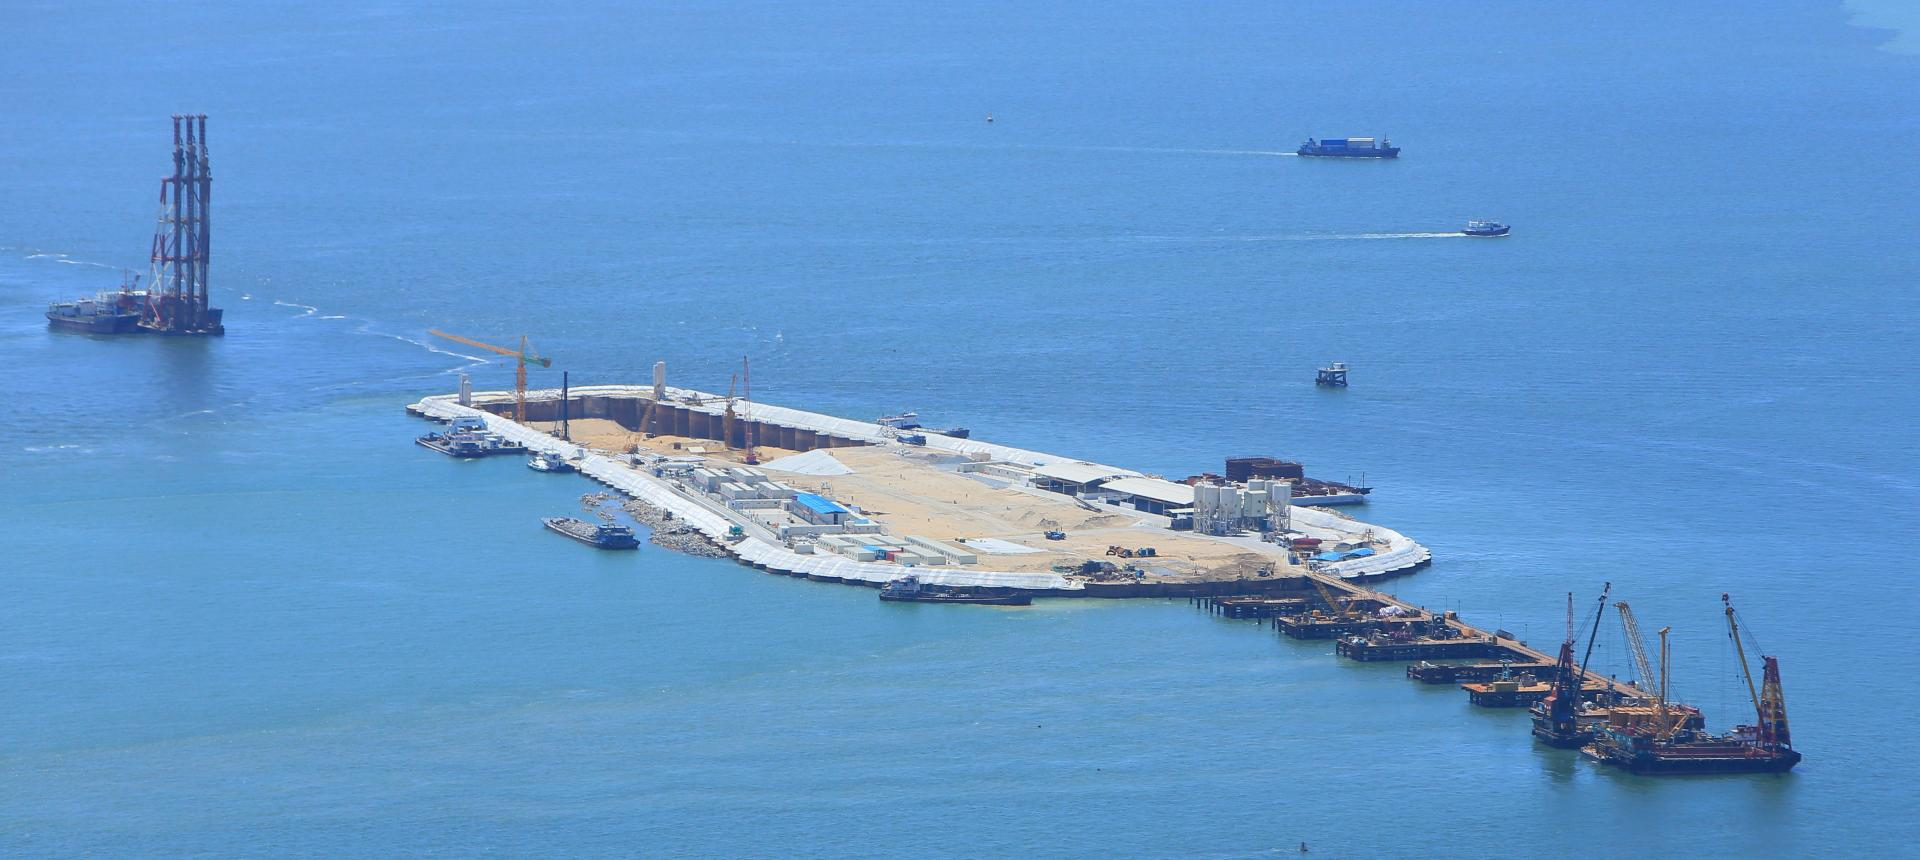 Concreting for man-made island and tunnel for the Future Hong Kong Zhuhai Macau Bridge Project.